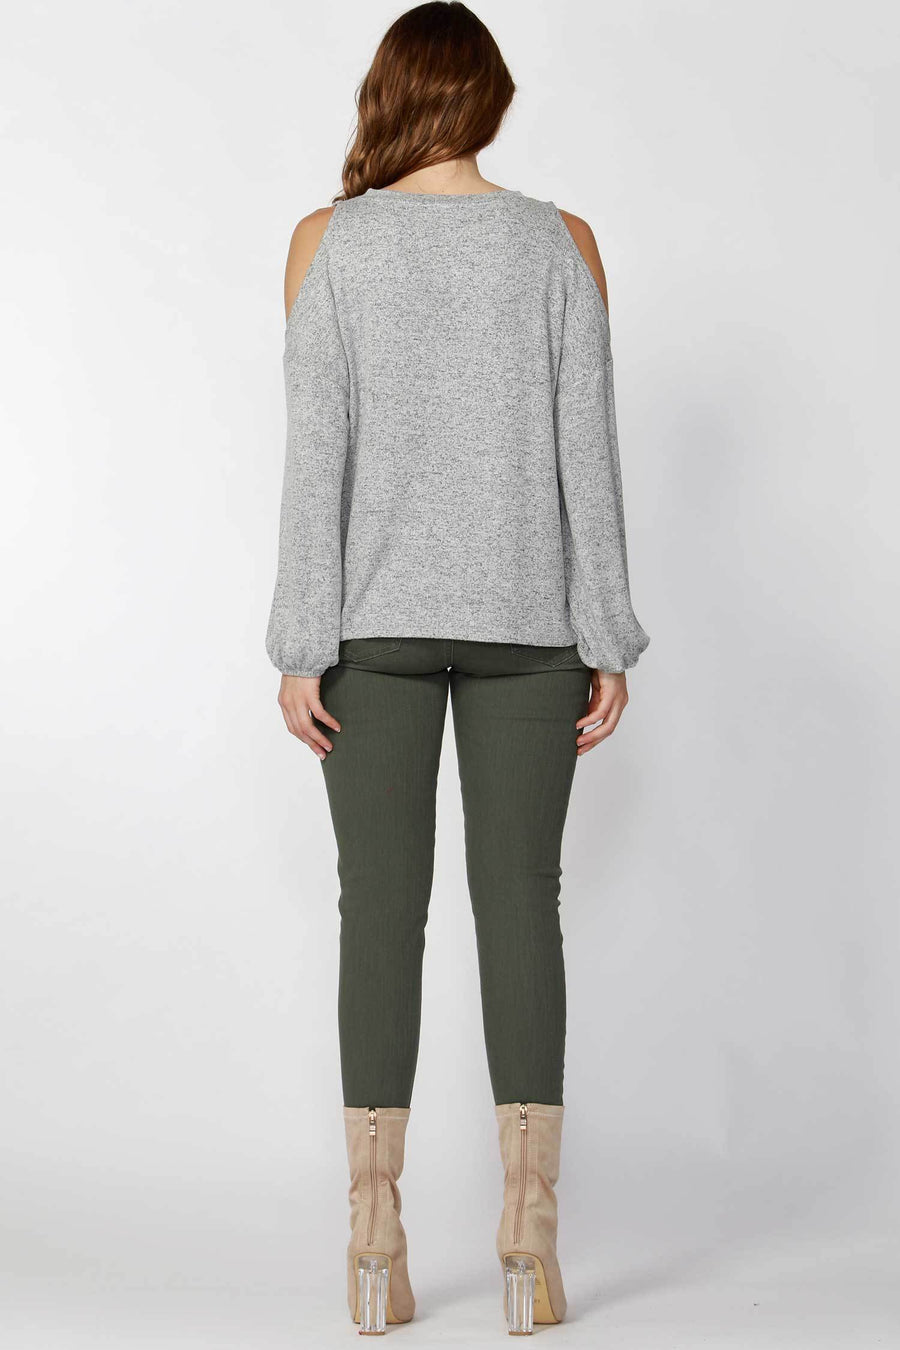 Stela Bubble Sleeve Top in Grey Marle